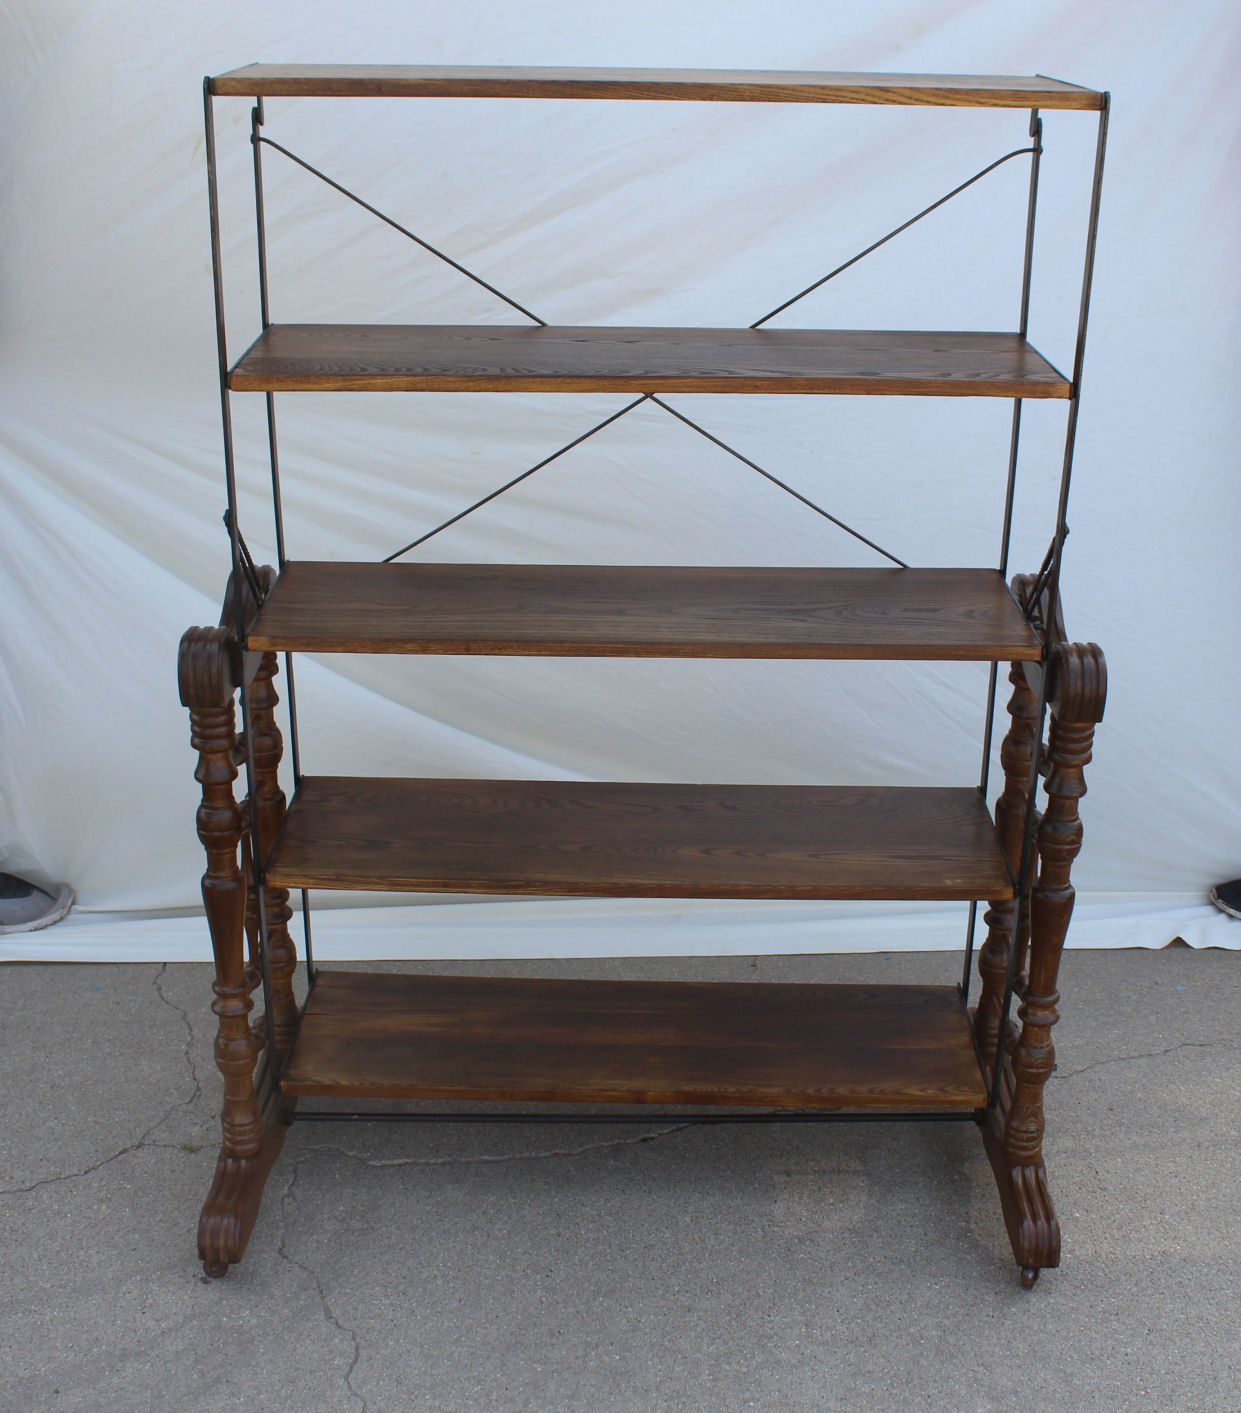 Bargain Johns Antiques Antique Wooden And Cast Iron Bakers Rack That Turns Into A Table